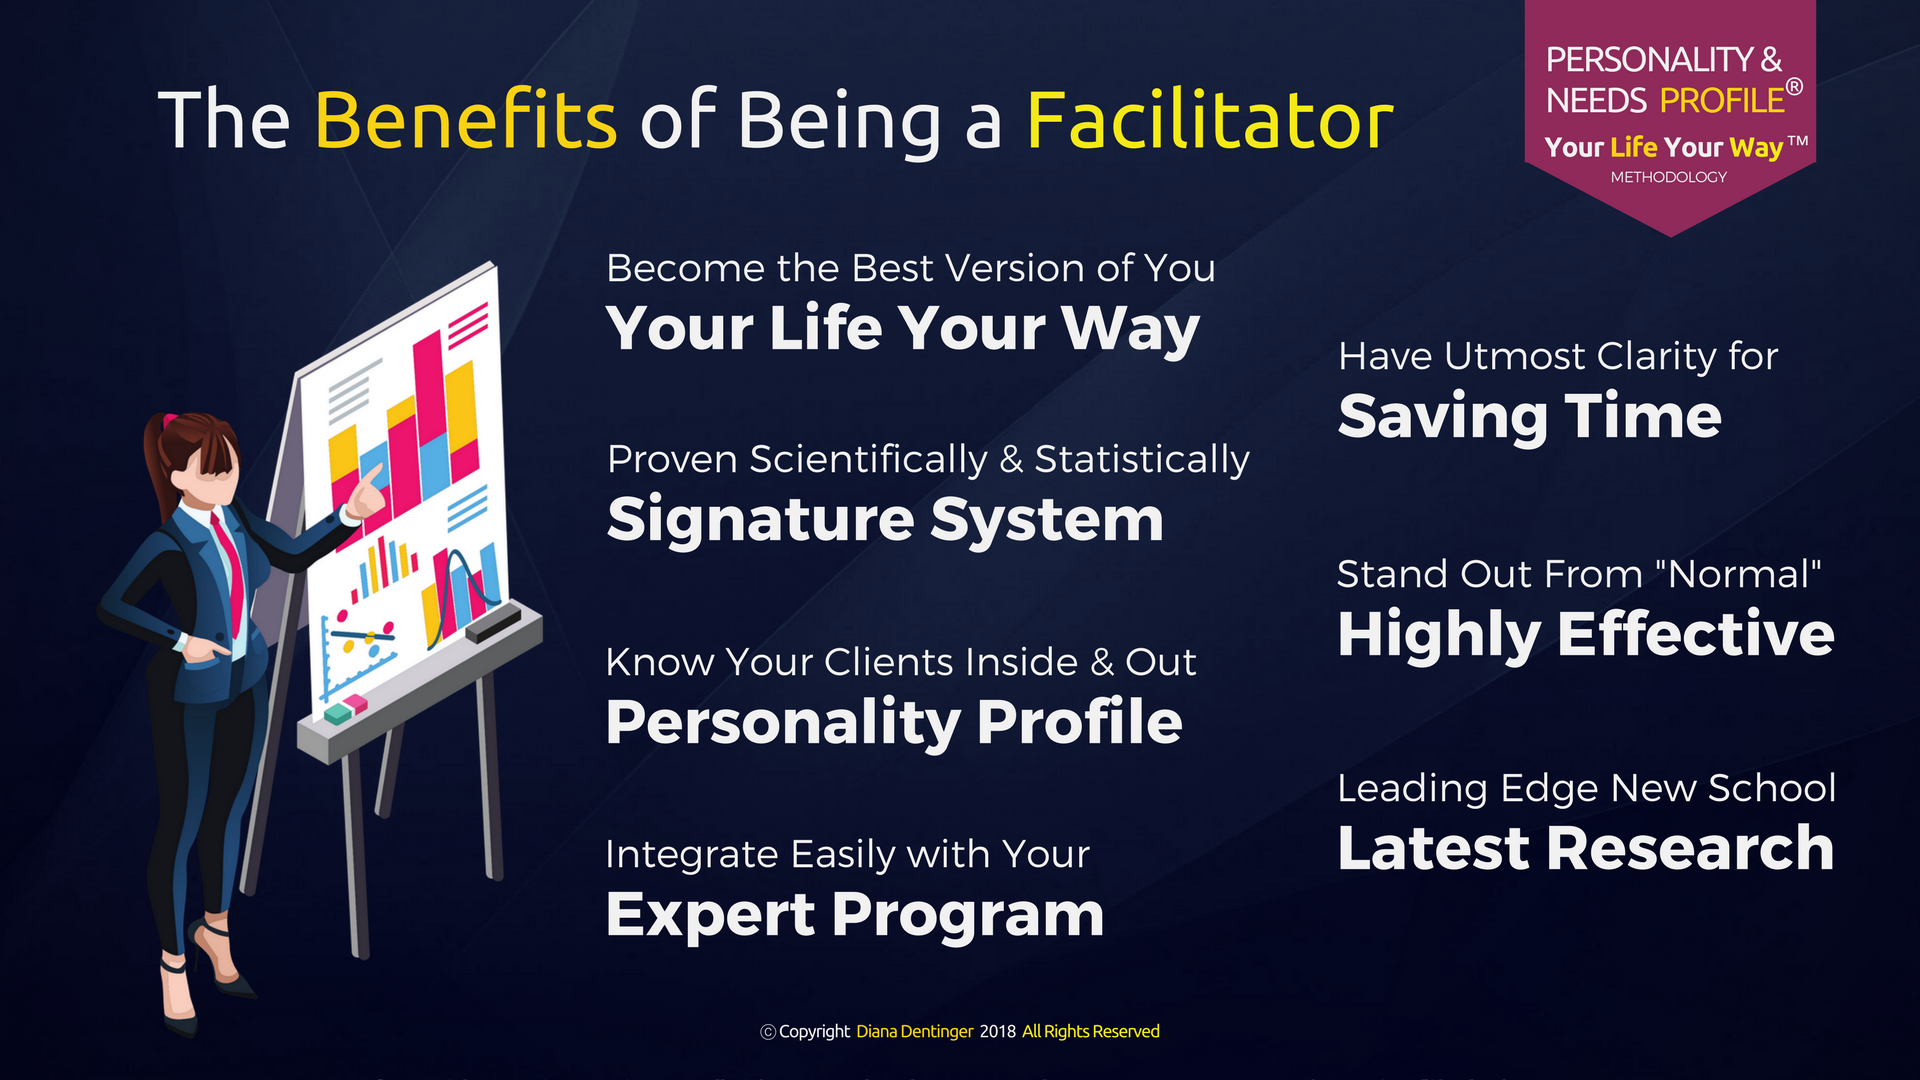 Your Life Your Way Facilitator Certification Presentation with Diana Dentinger